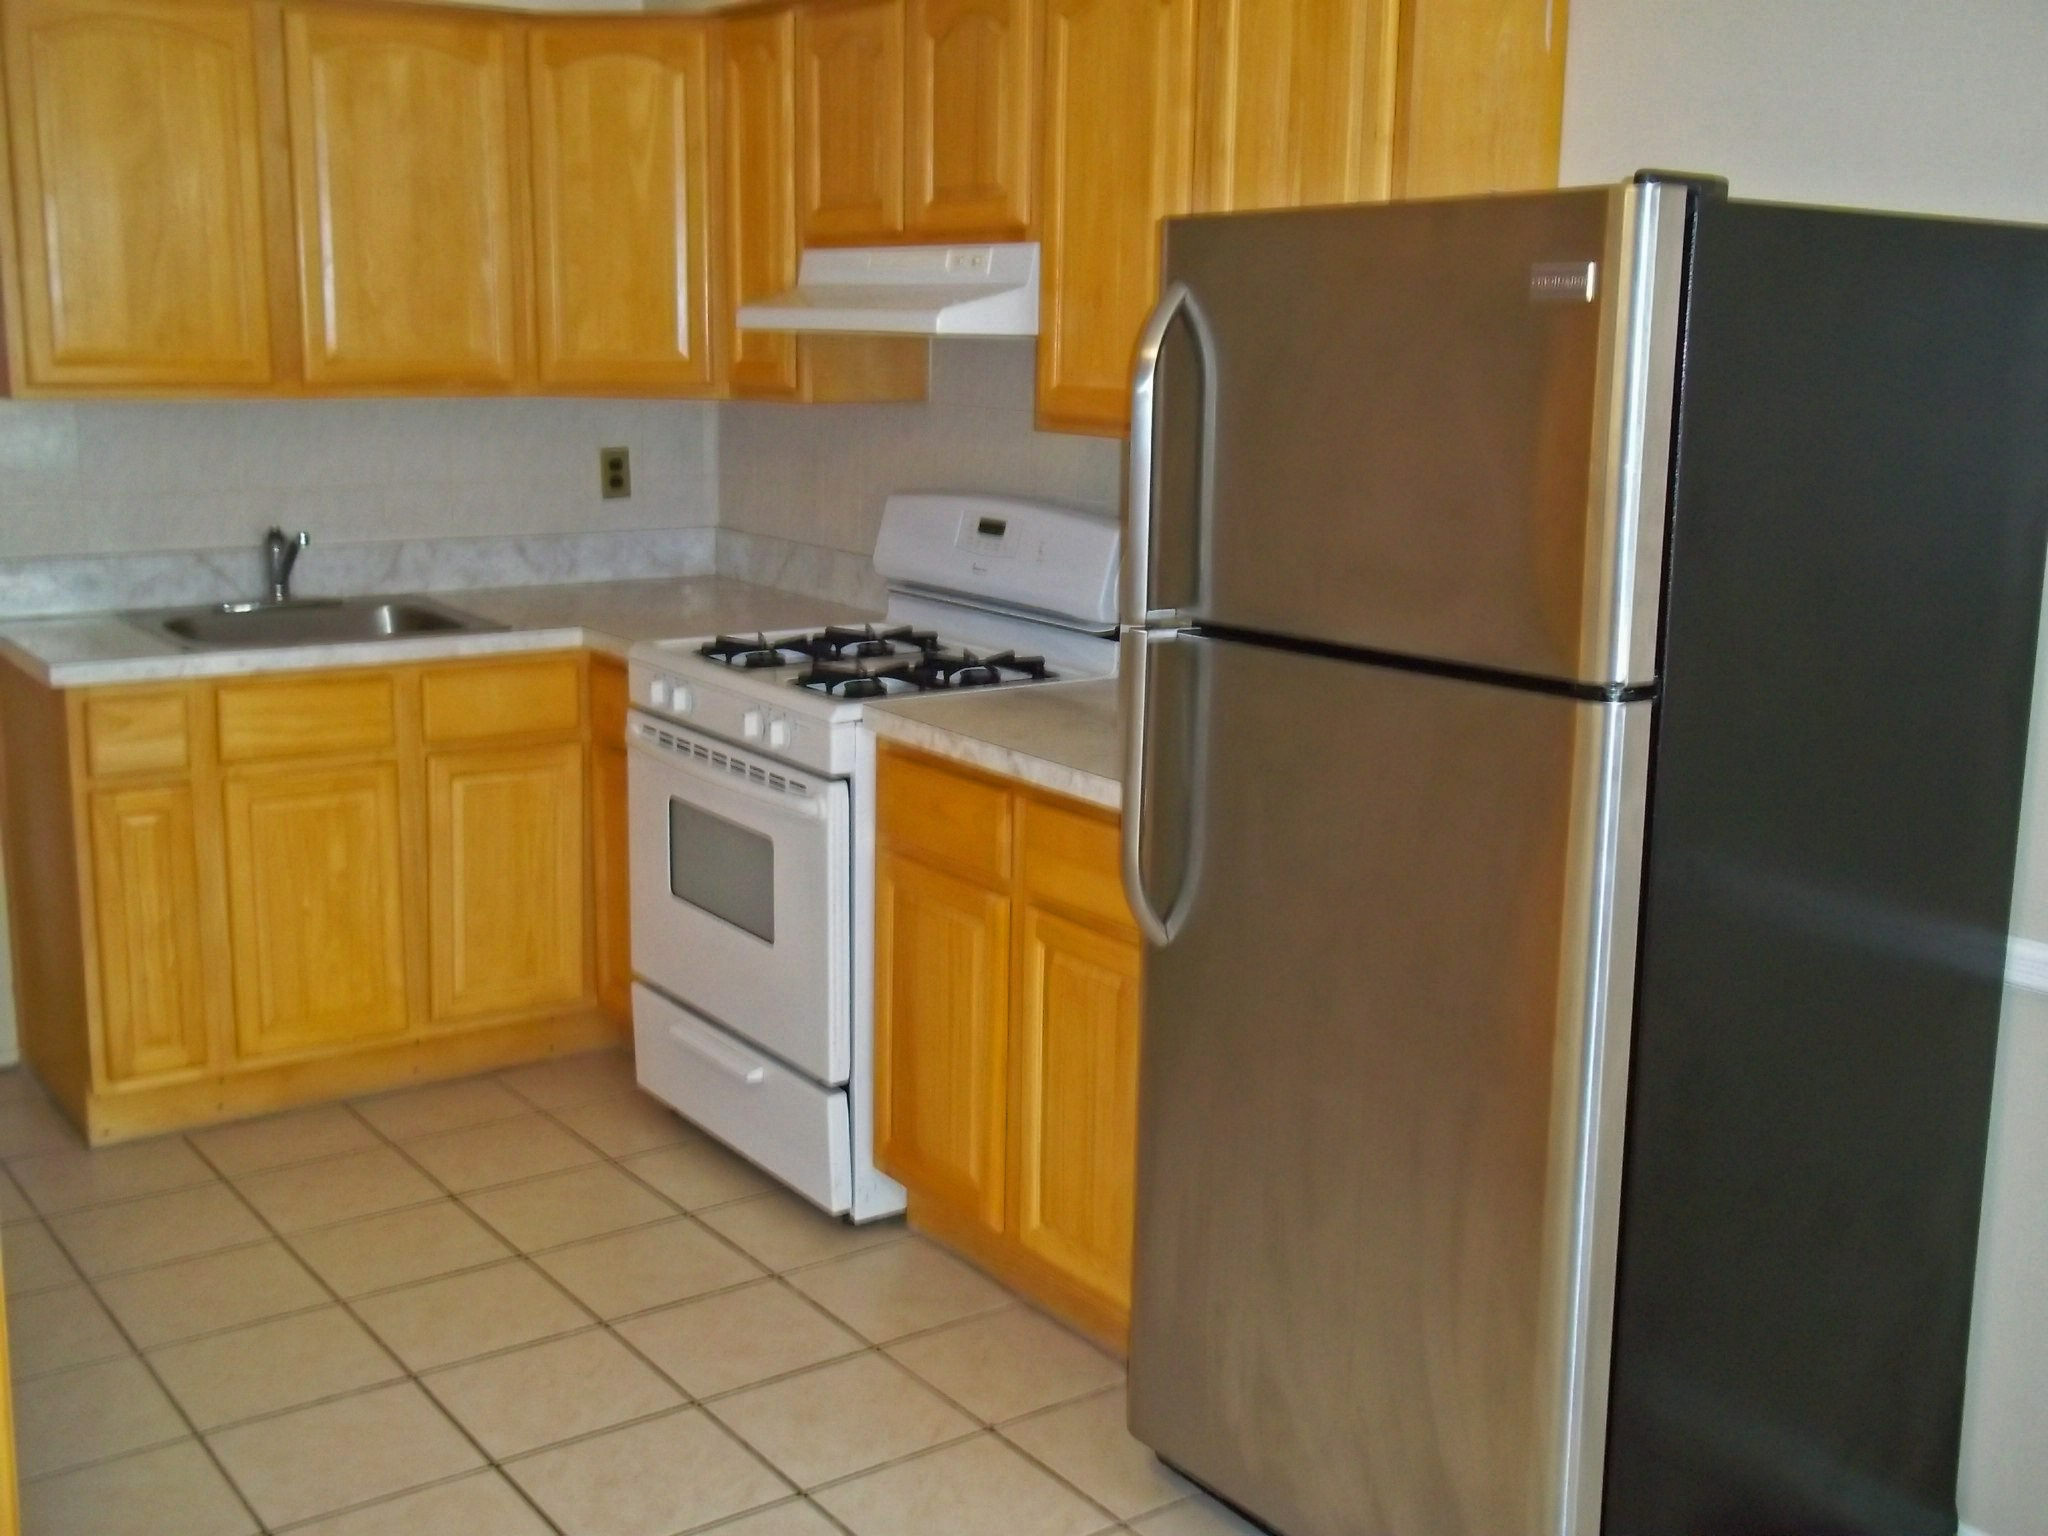 2 bedroom apartments cheap rent 2 bedroom canarsie apartment for rent crg3097 17934